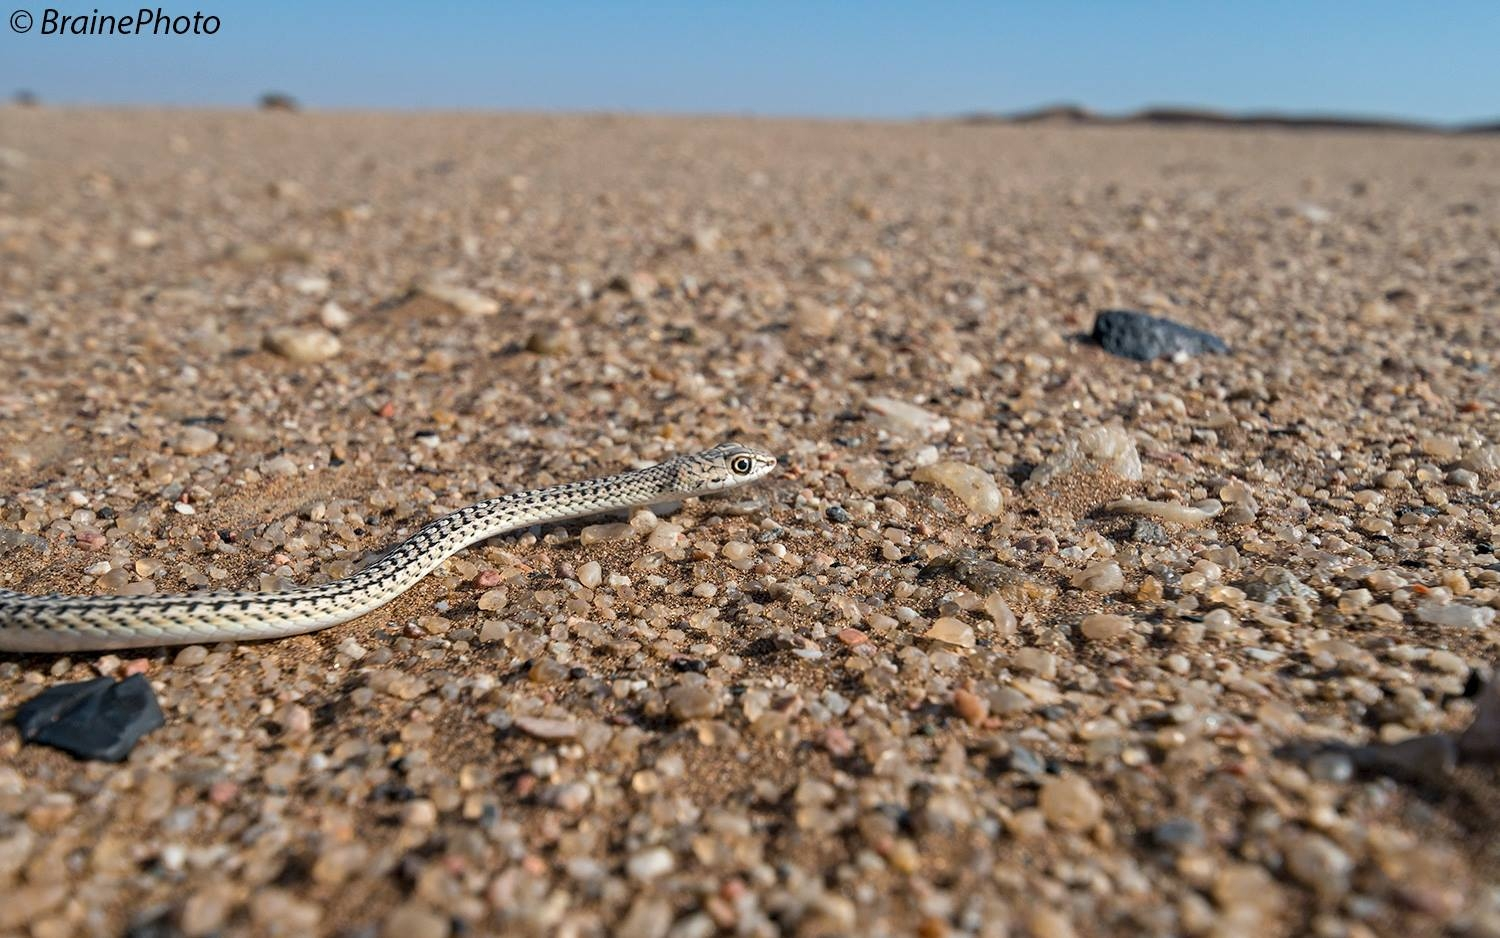 Our Rocky Desert Tour takes you to Namibia's grand Moonlandscape and the Swakop River Valley. The scenery and desert-adapted fauna and flora that occur here will make this an unforgettable experience. A perfect activity for botanists, photographers, birders, herpetologists and general naturalists. The Sand snake is one of the many highlights on this activity.